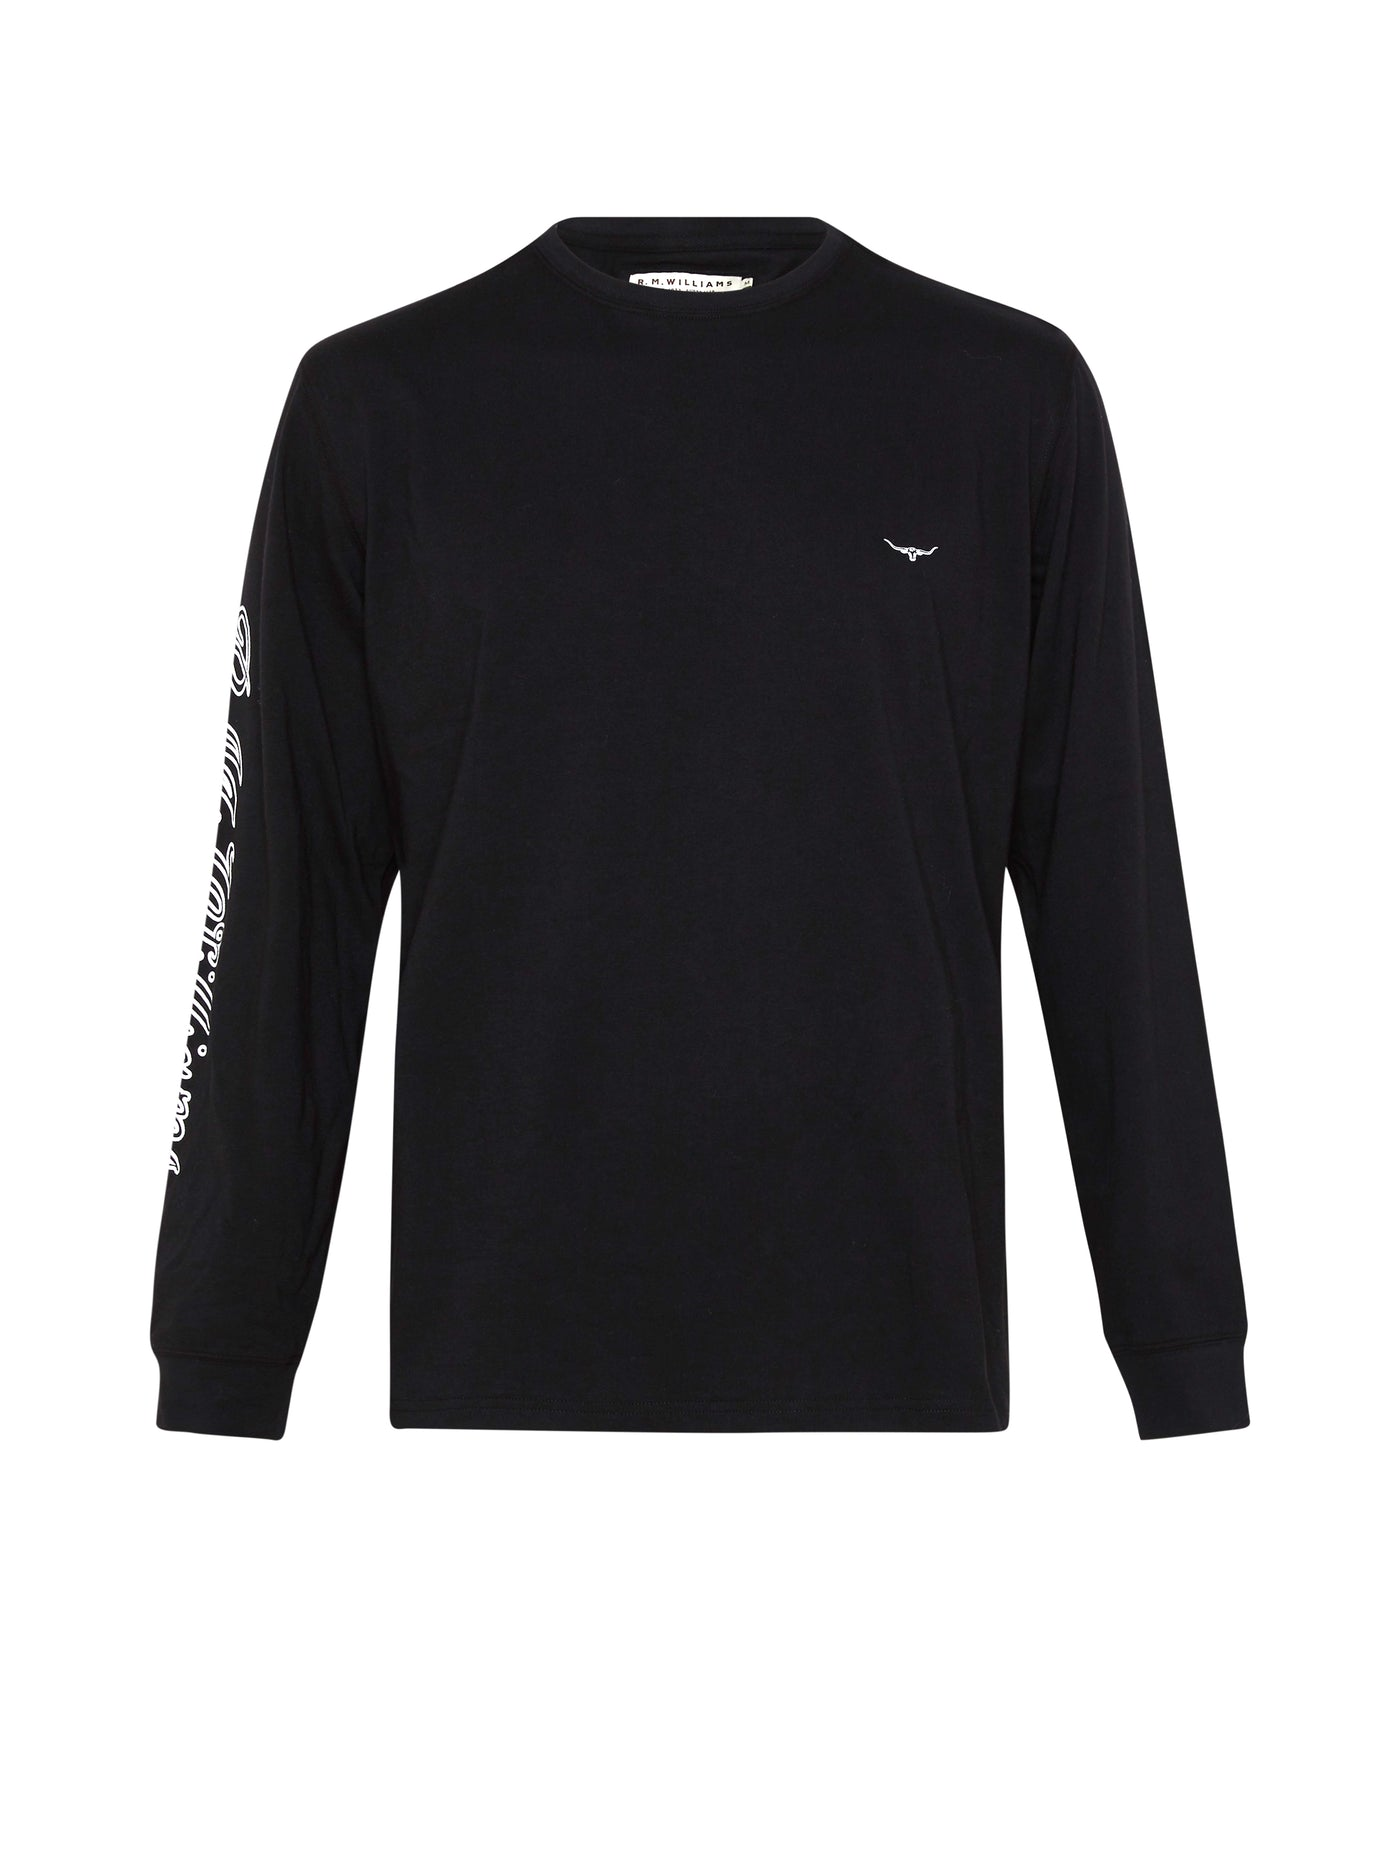 RMW Signature Long Sleeve T-Shirt